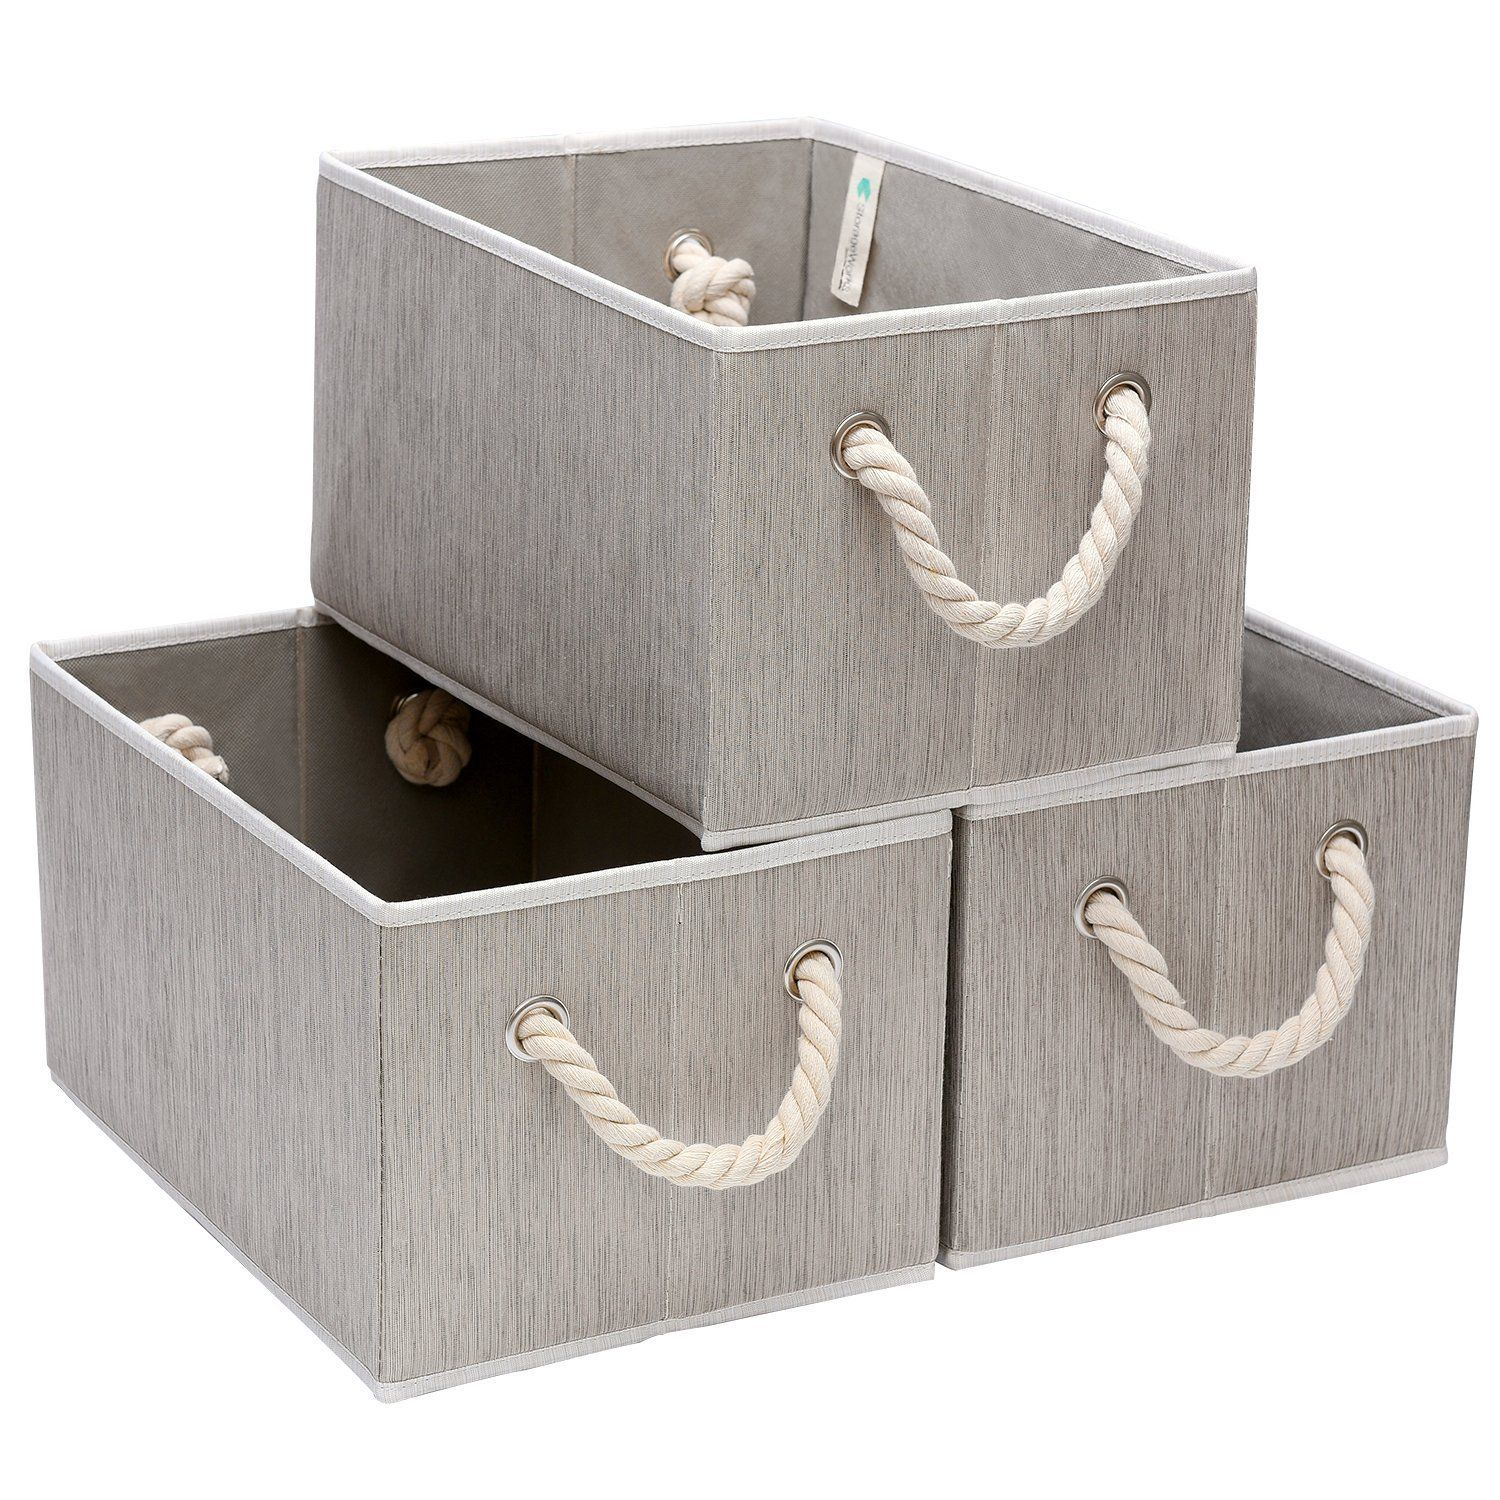 Storageworks Polyester Storage Box With Strong Cotton Rope Handle